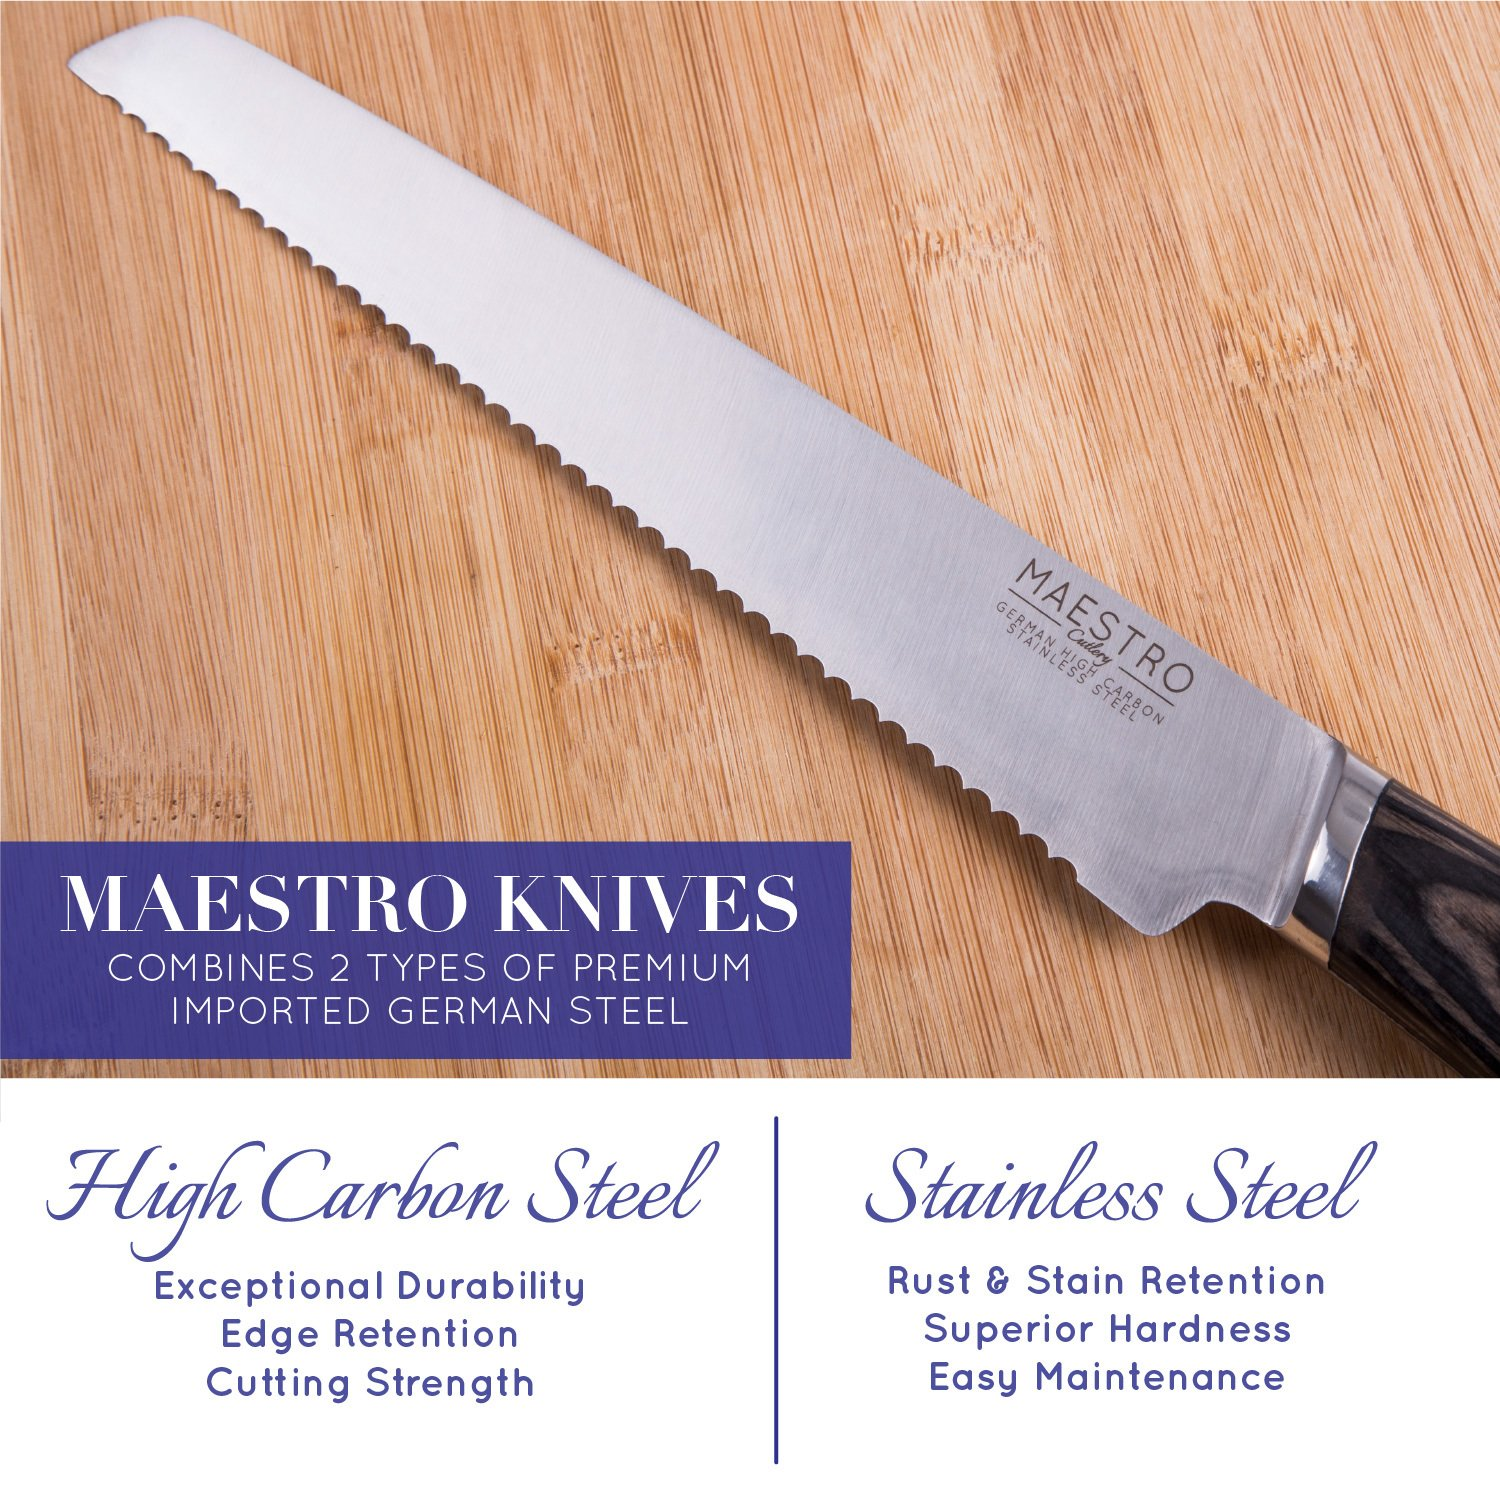 """Maestro Cutlery Volken Series German High Carbon Stainless Steel 8"""" Inch Bread Knife, 8"""" Inch Chef's Knife, 3.5"""" Inch Paring Knife, 8"""" Inch Slicing Knife, and 5"""" Inch Utility Knife with Black Wood Han by Maestro (Image #2)"""